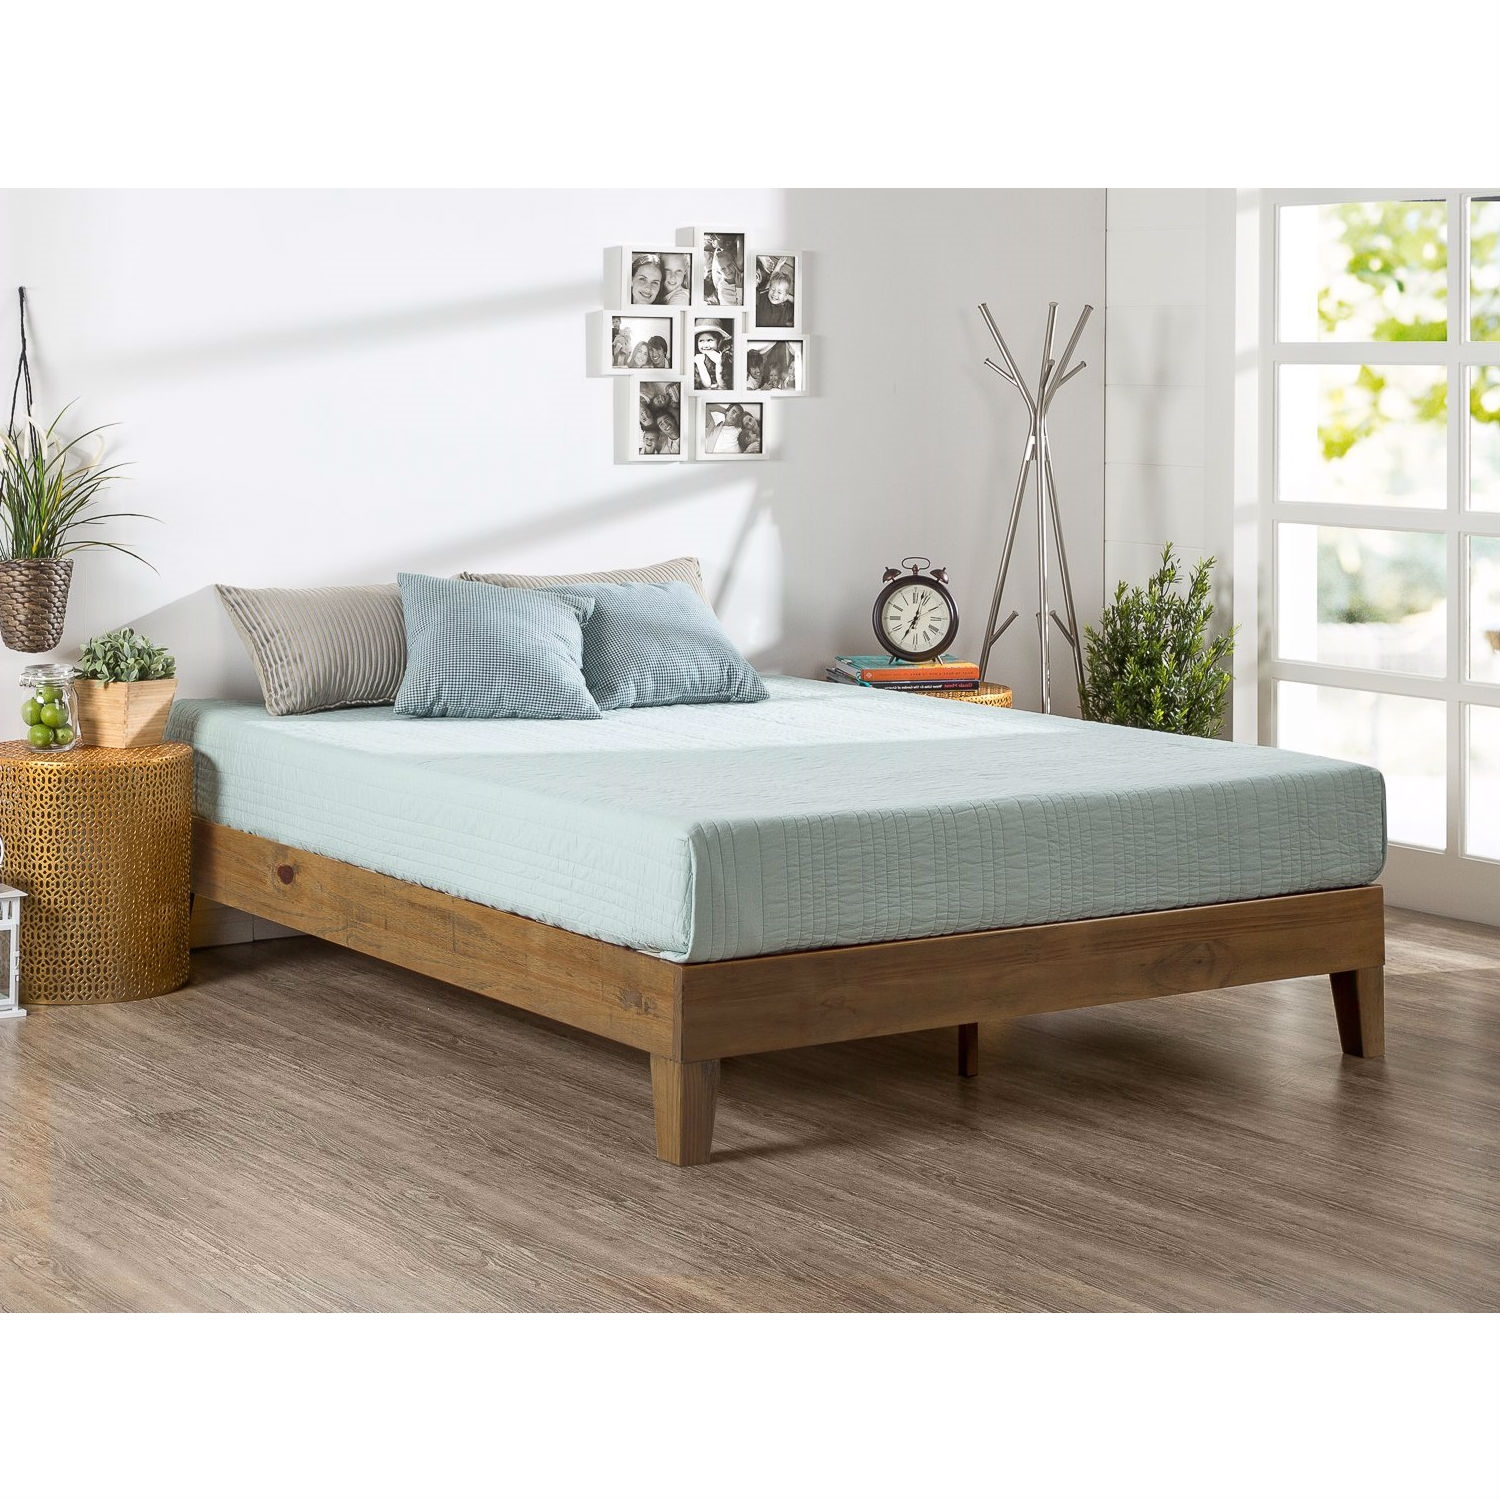 Full Size Solid Wood Low Profile Platform Bed Frame In Pine Finish